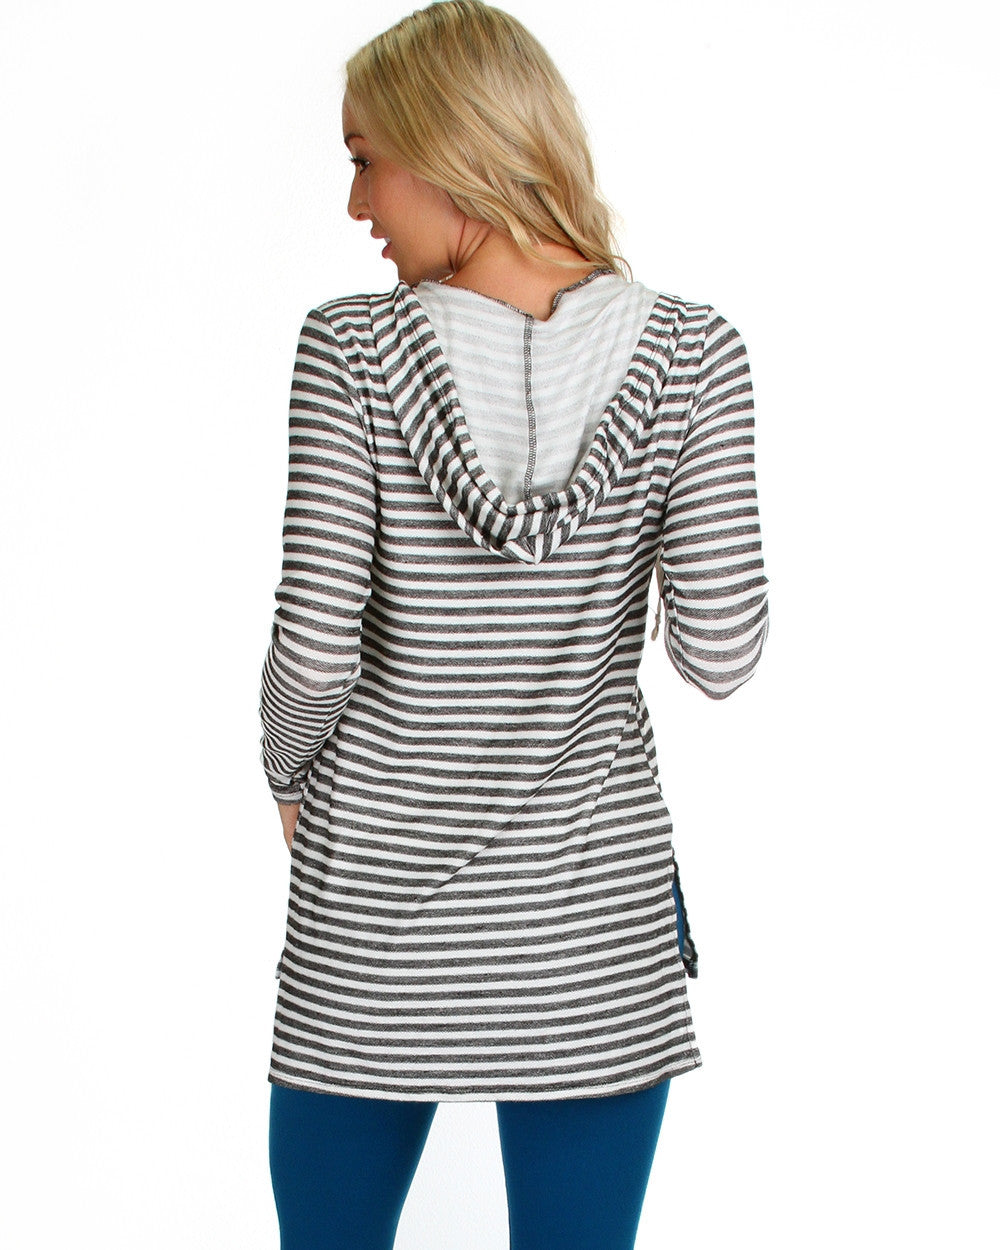 Try Me On Hooded Sweater Top In Stripes